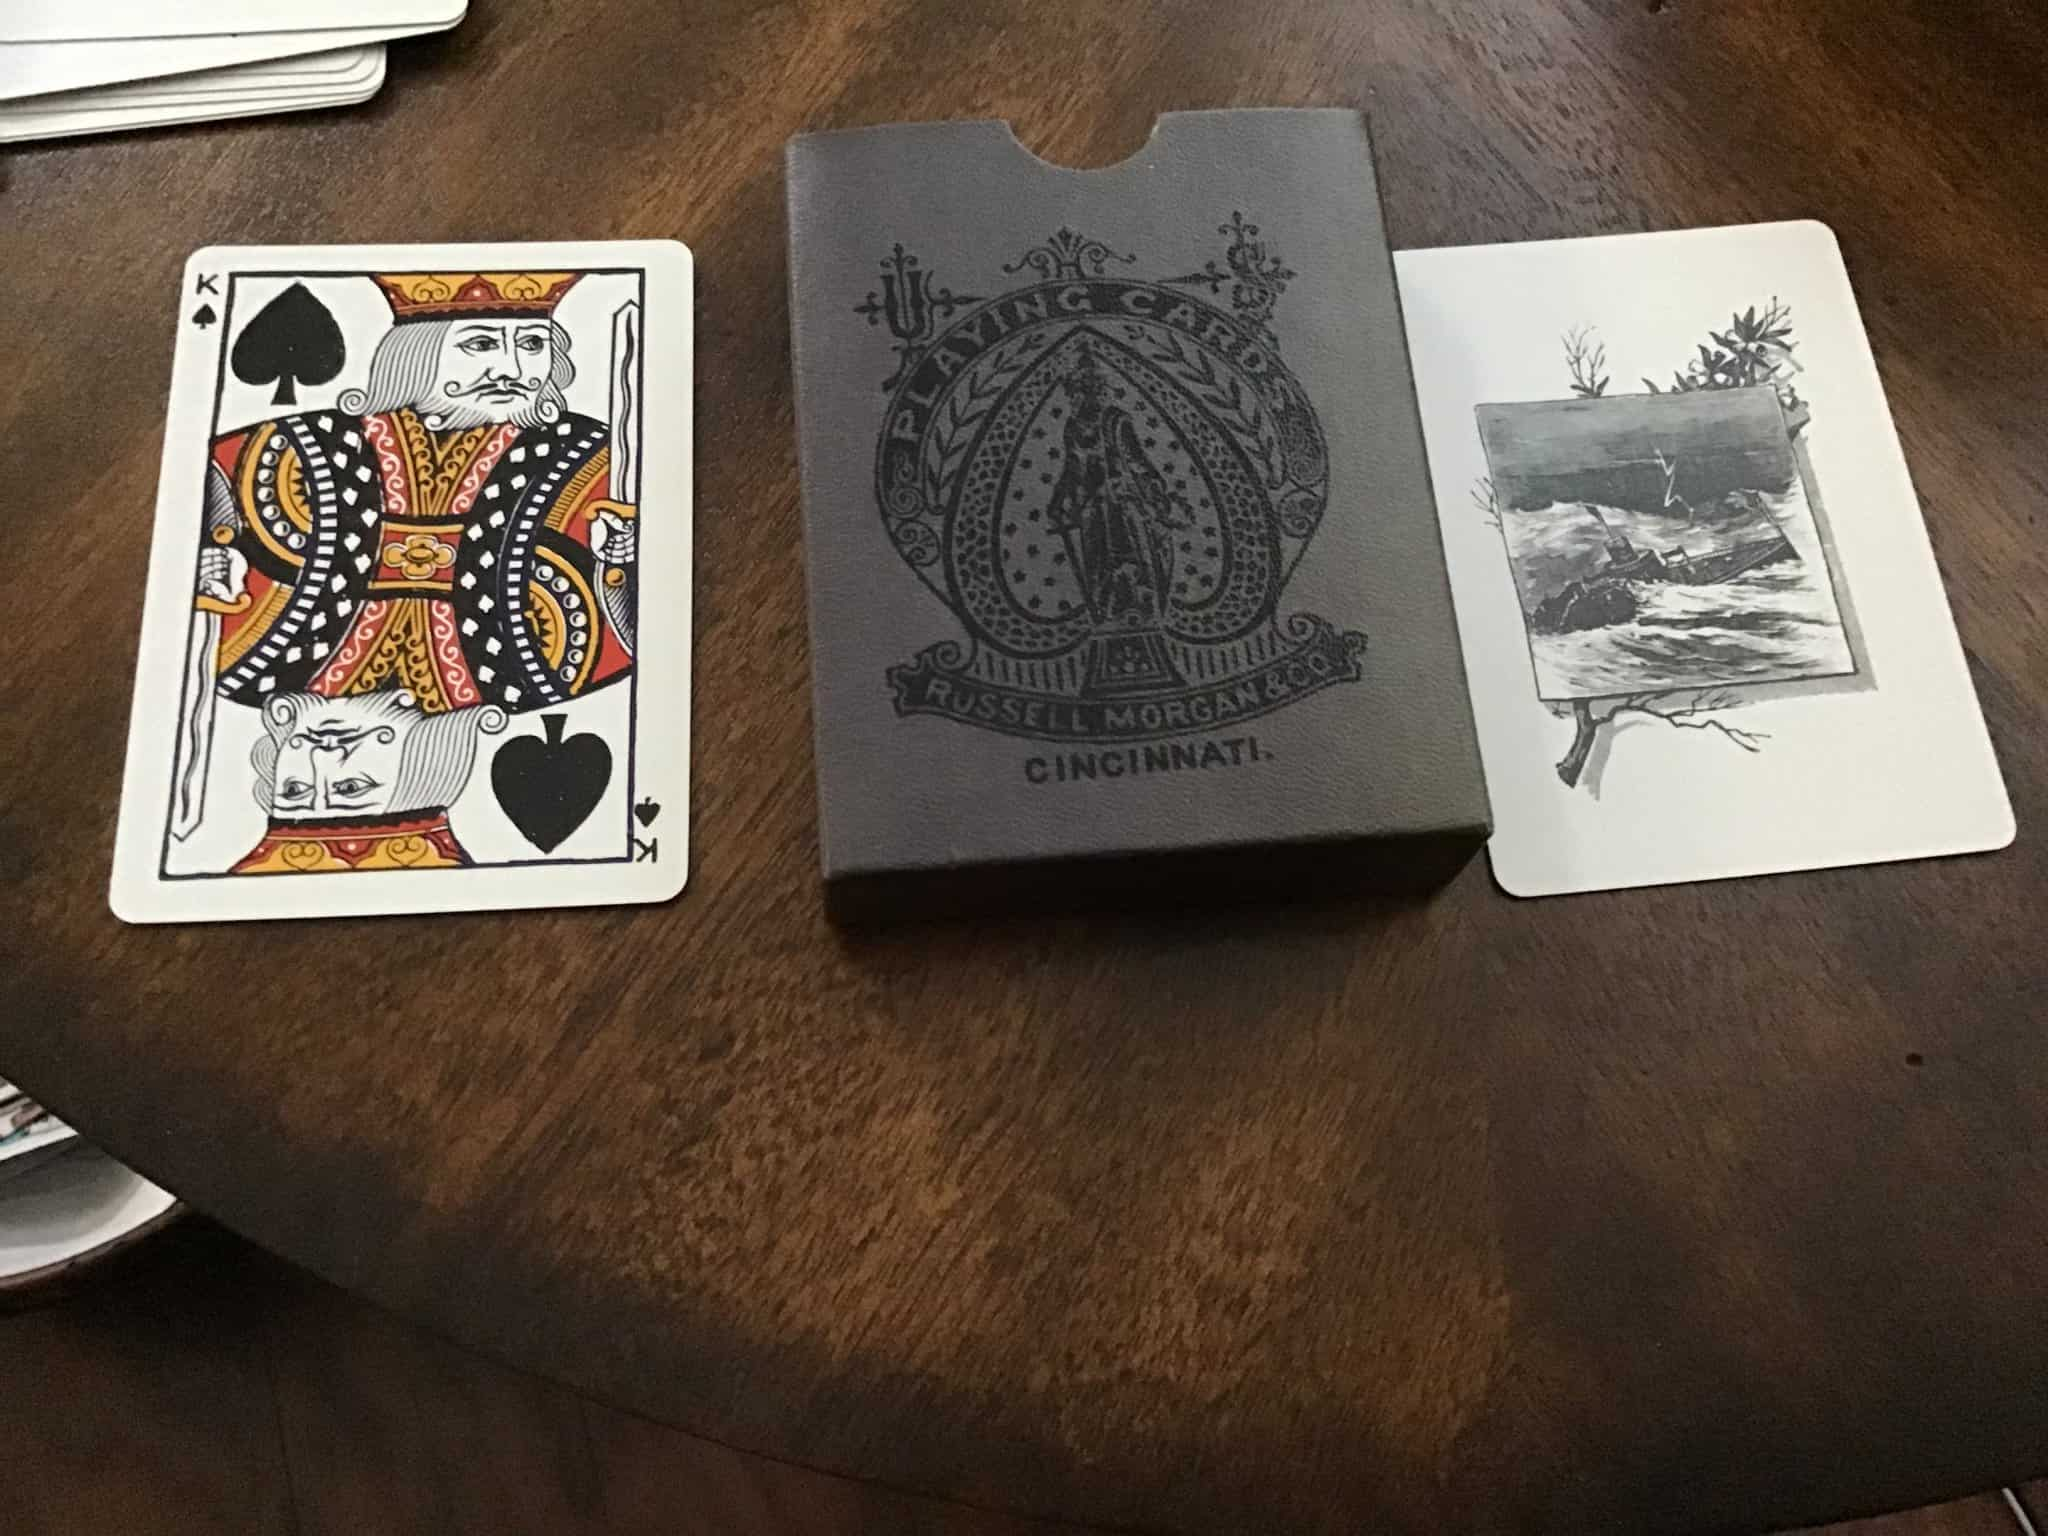 Need some help in identifying this deck from Russell Morgan & Co. Deck has never been used! Anyo